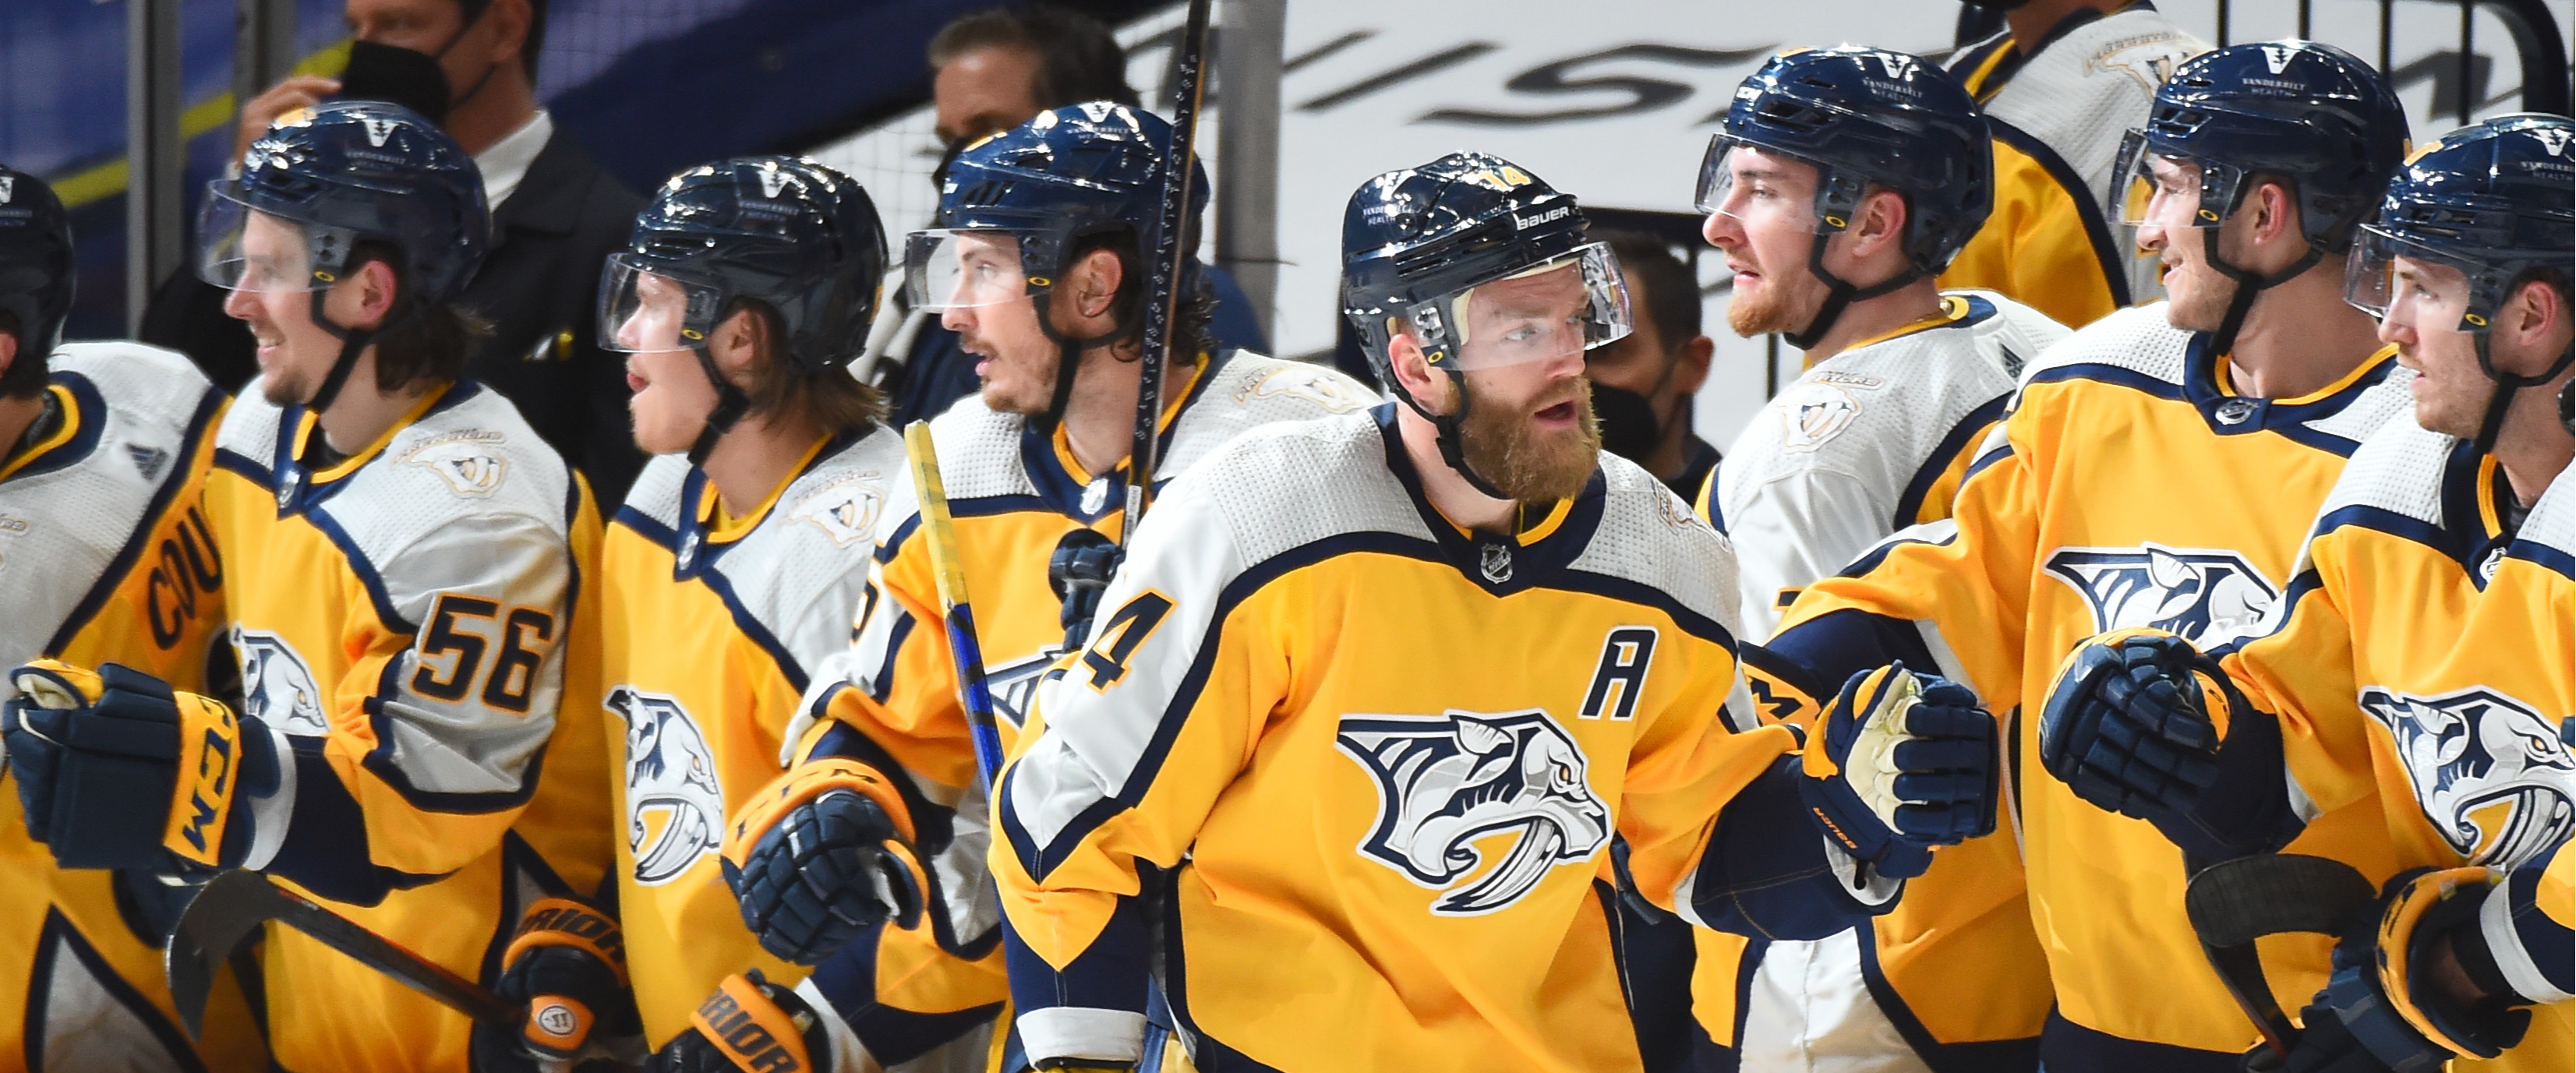 Predators are enroute to a first-round playoff exit